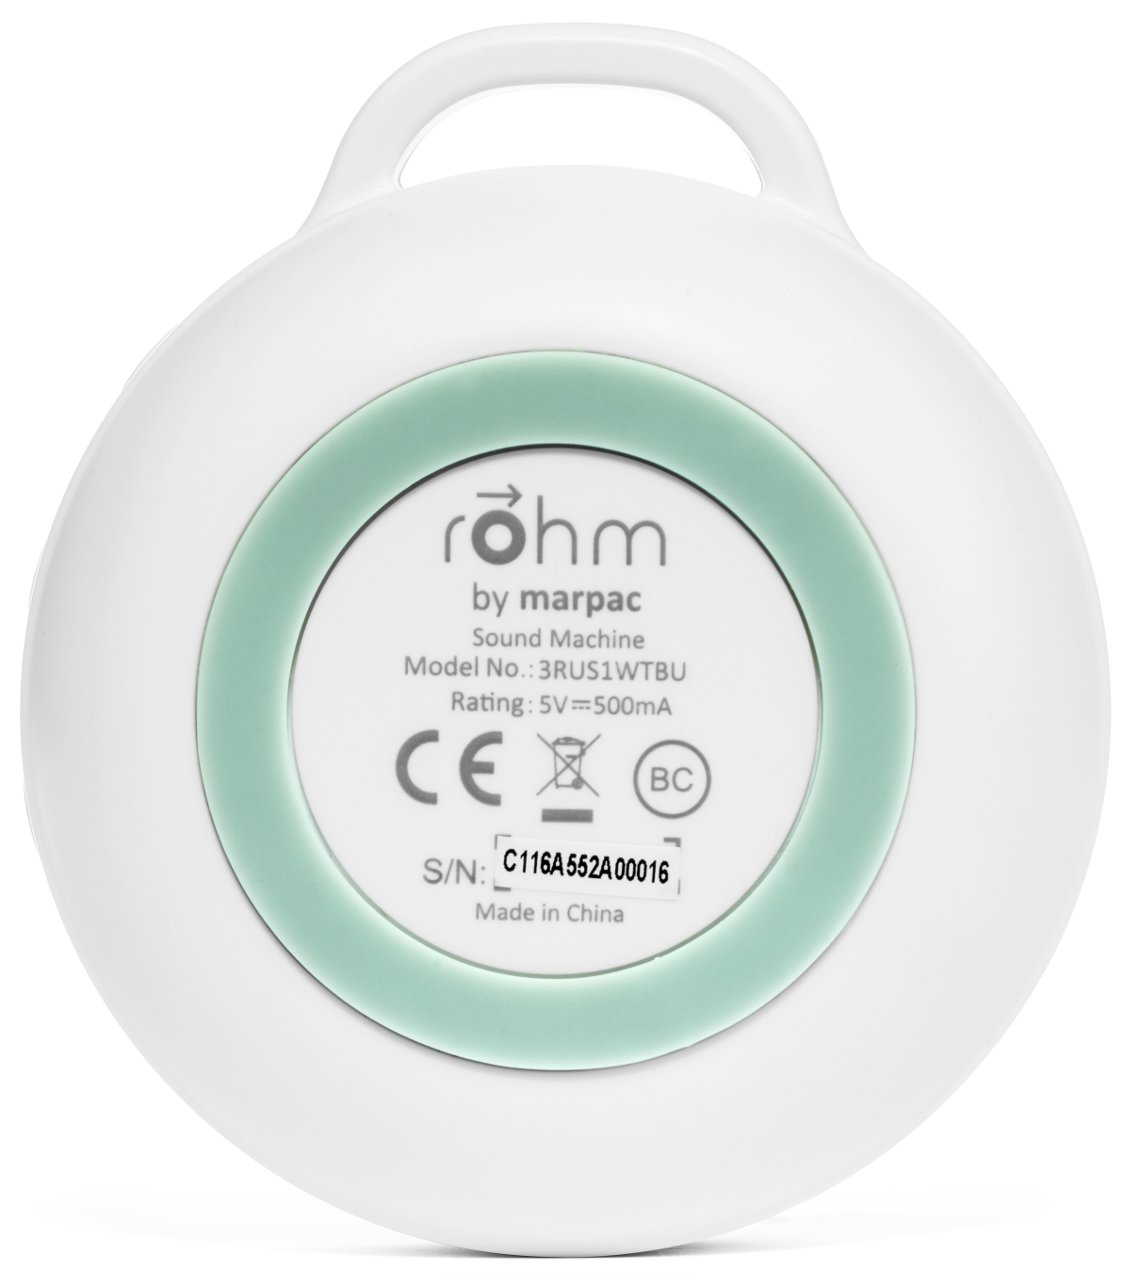 Quirks Marketing Philippines - Marpac Rohm Portable White Noise Sound Machine for Adults